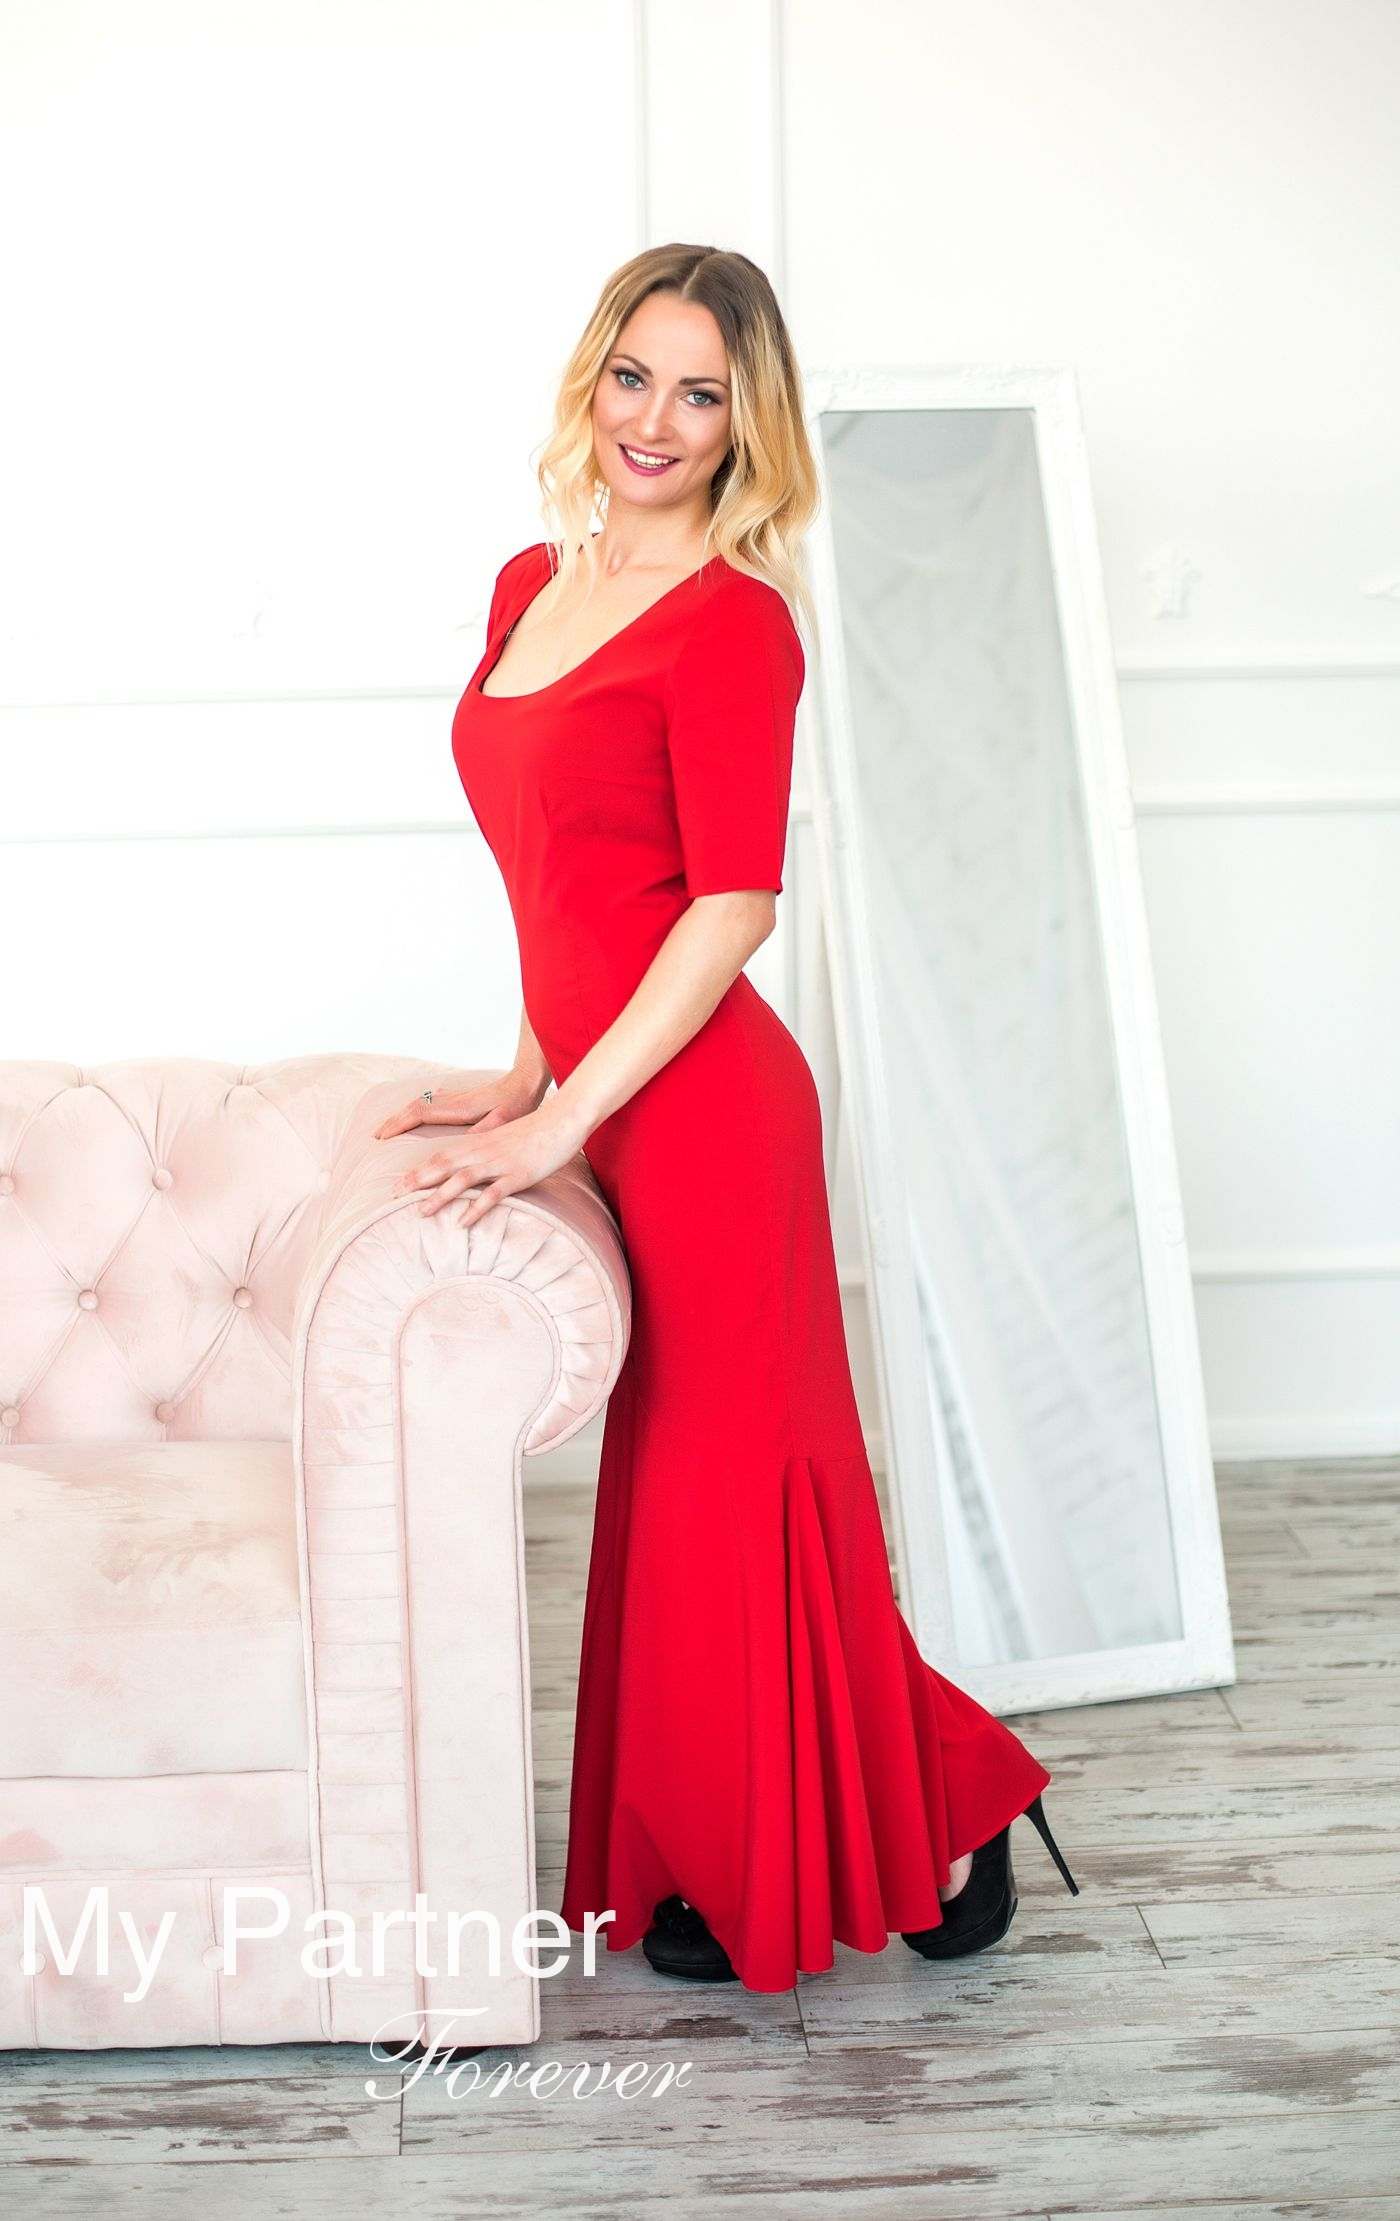 Stunning Ukrainian Woman Marina from Kiev, Ukraine